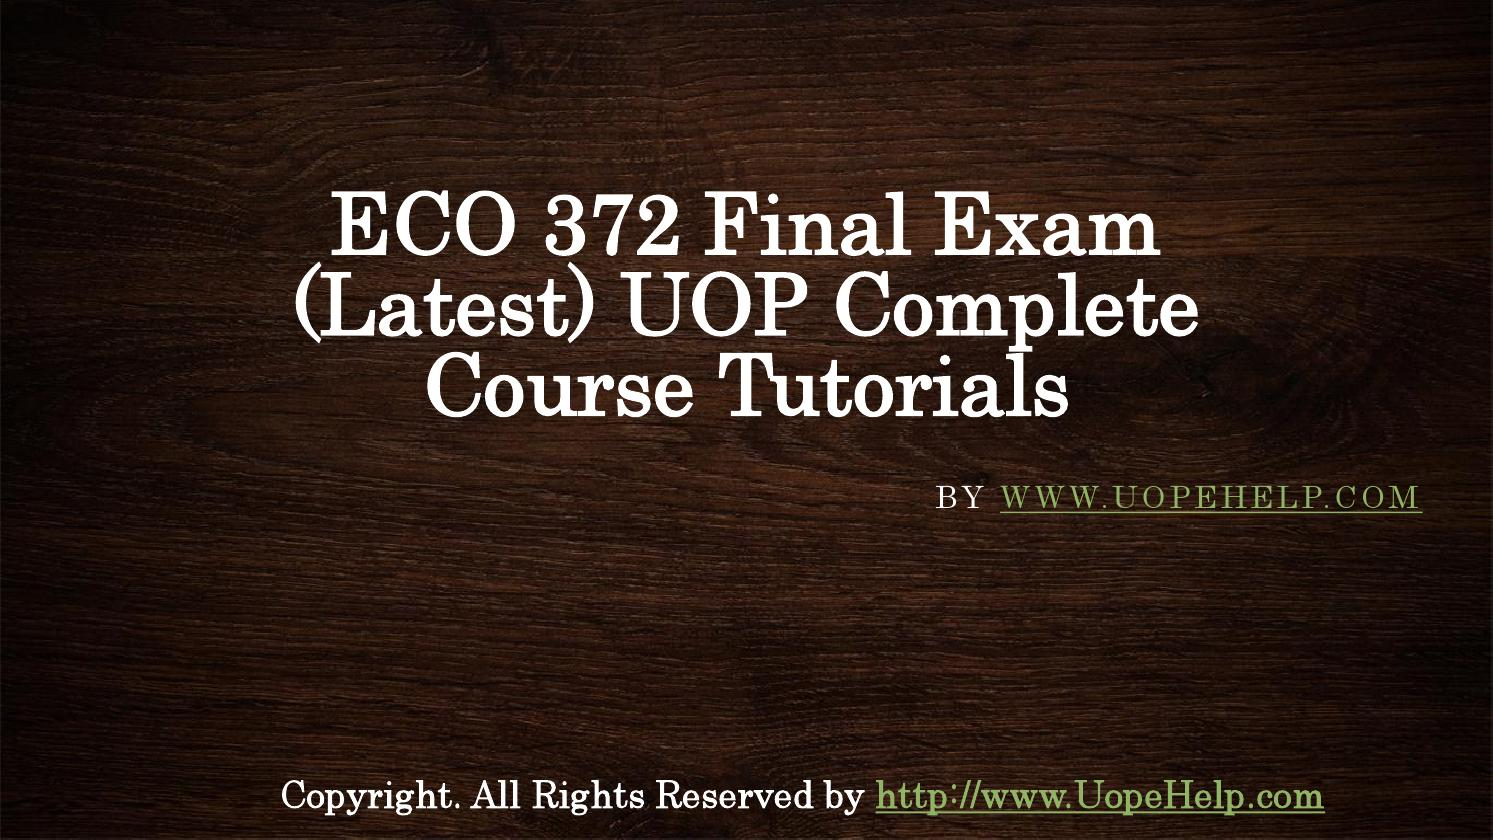 uop eco 372 final exam In december, officials uncovered widespread cheating on an english final exam  by students at a well-regarded school outside houston.